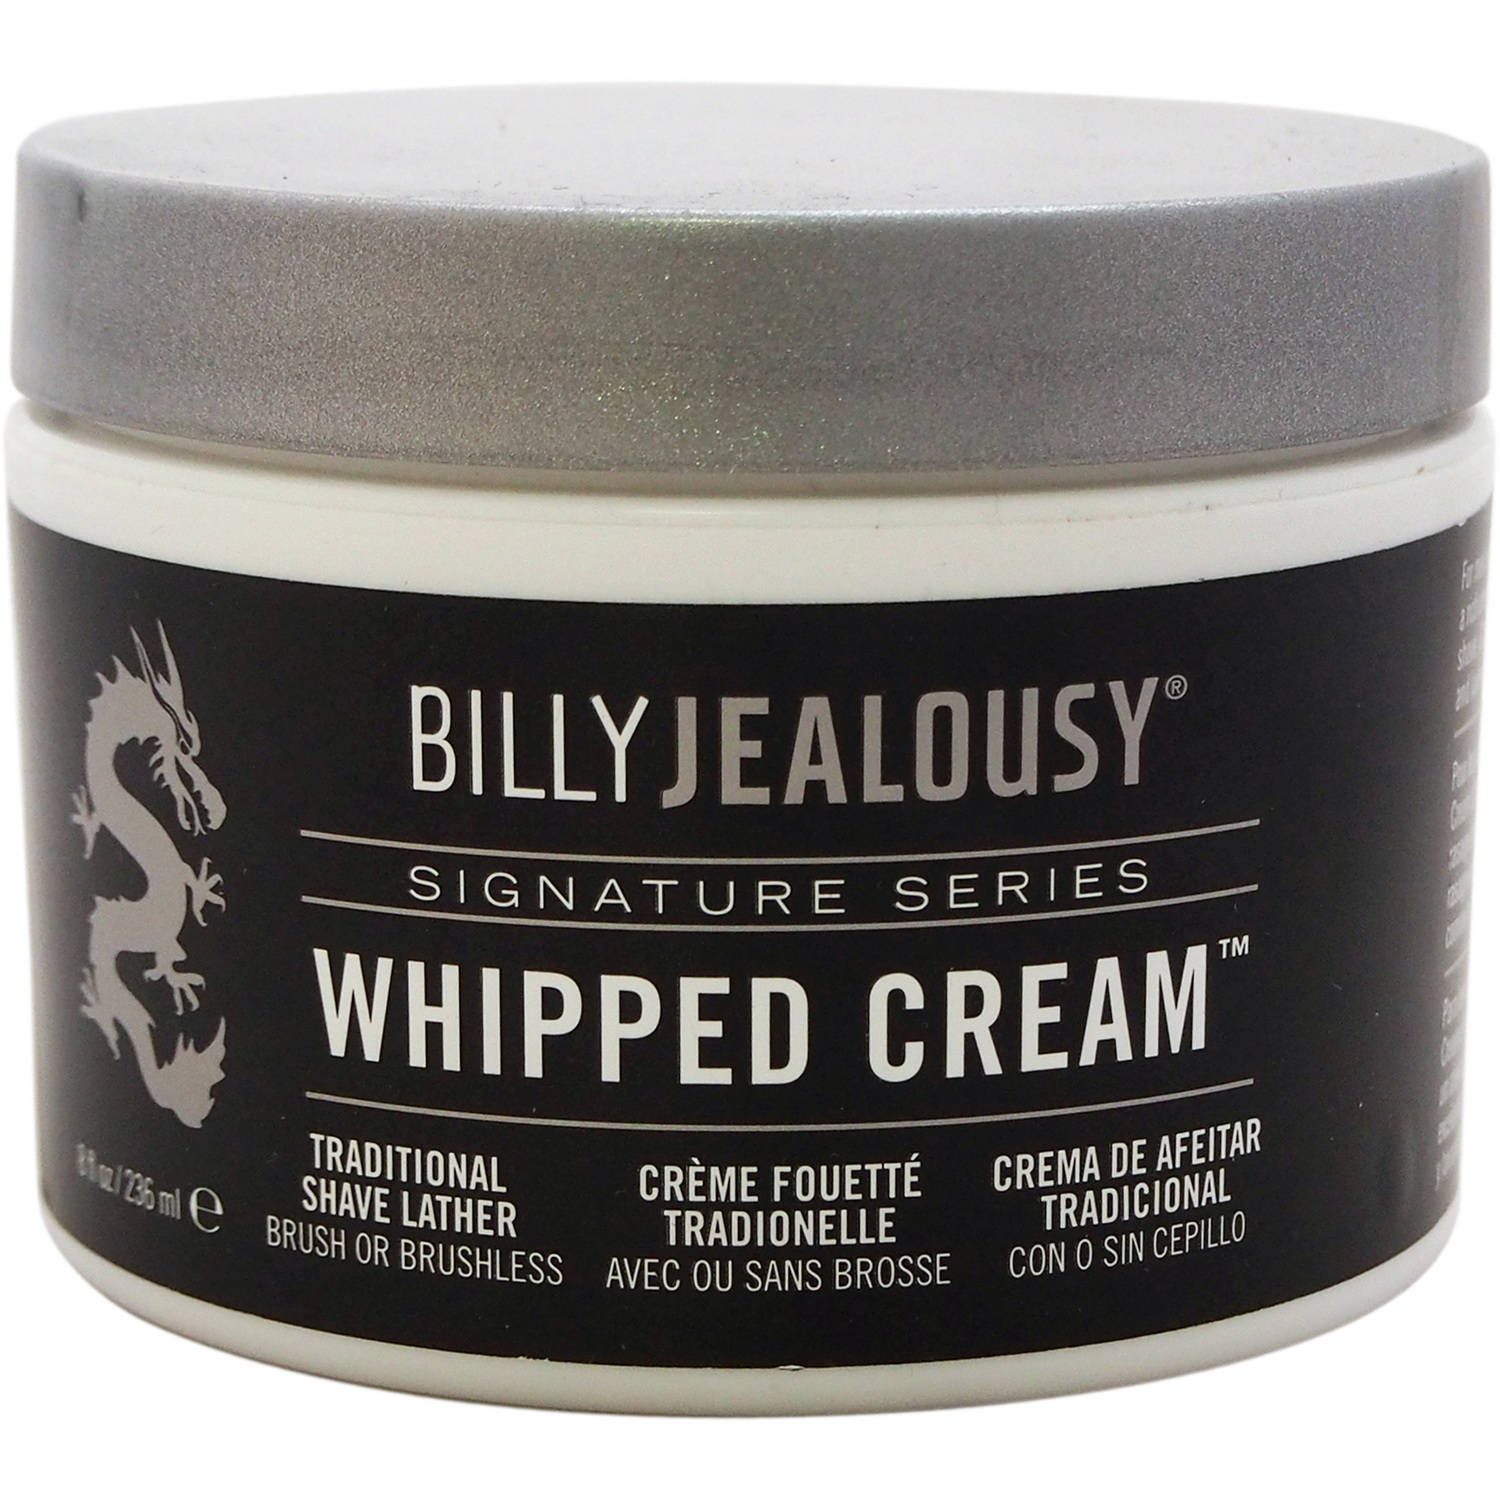 Whipped Cream Traditional Shave Lather by Billy Jealousy for Men, 8 oz